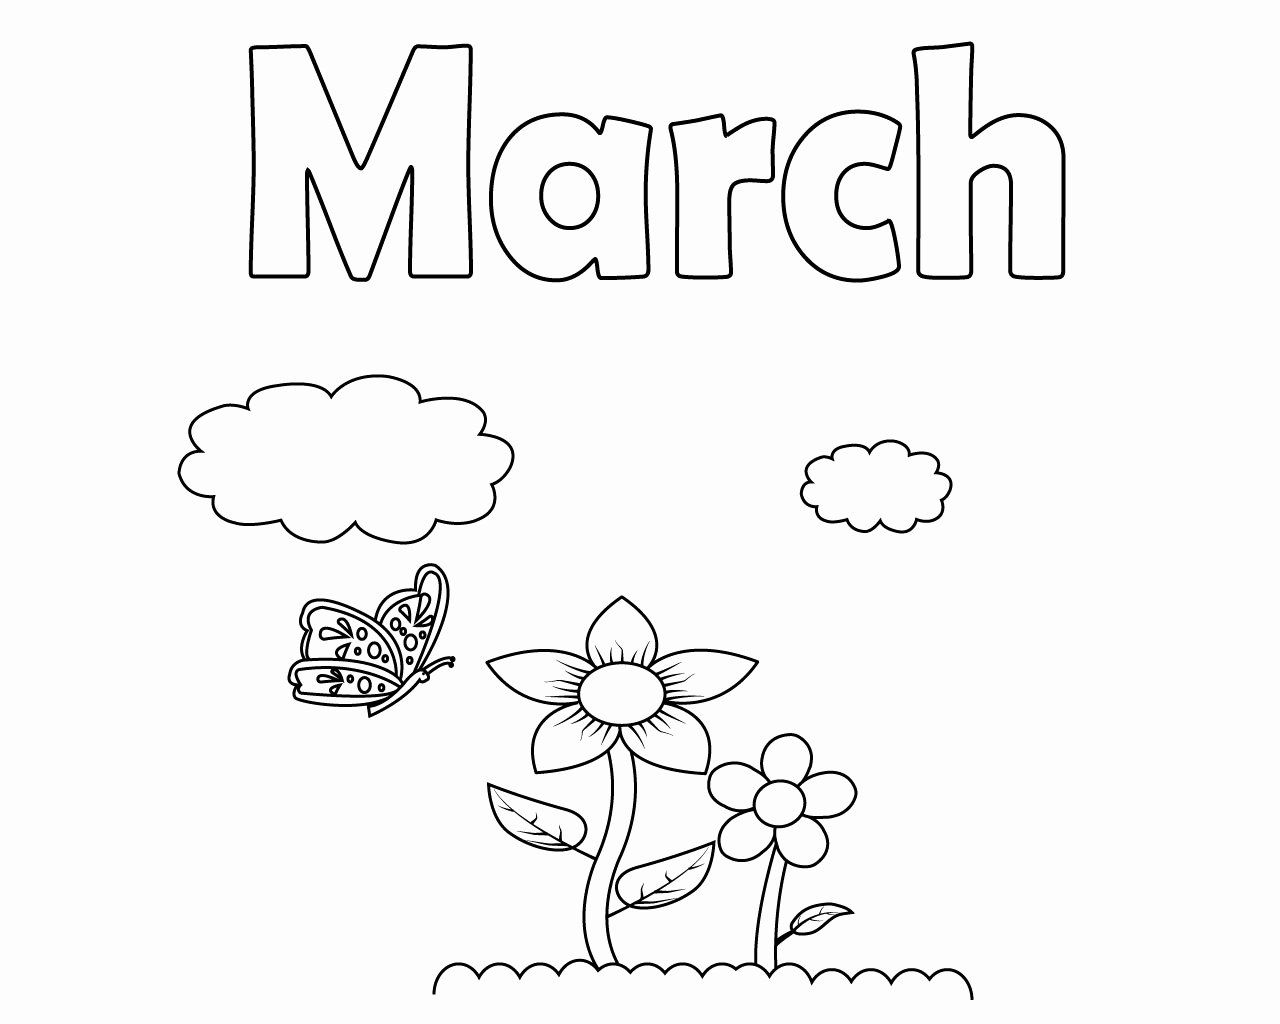 Coloring Books For Toddlers Beautiful Free Printable March Coloring Pages For Kids Toddler Coloring Book Coloring Pages Free Printable Coloring Pages